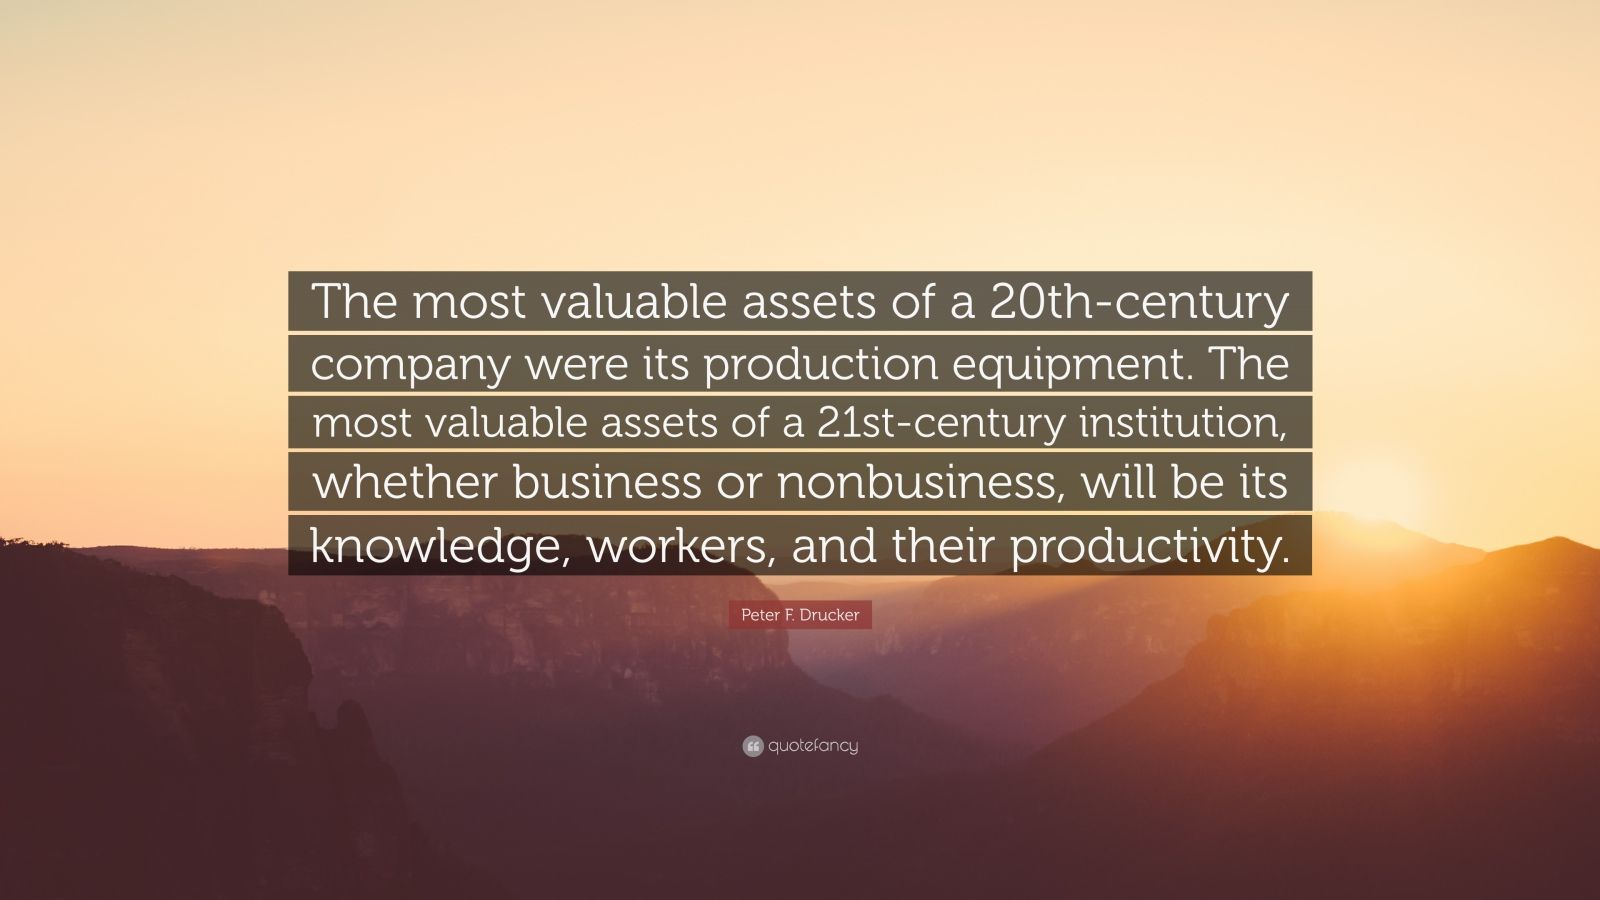 "Peter F. Drucker Quote: ""The most valuable assets of a 20th-century company were its production equipment. The most valuable assets of a 21st-century institution, whether business or nonbusiness, will be its knowledge, workers, and their productivity."""